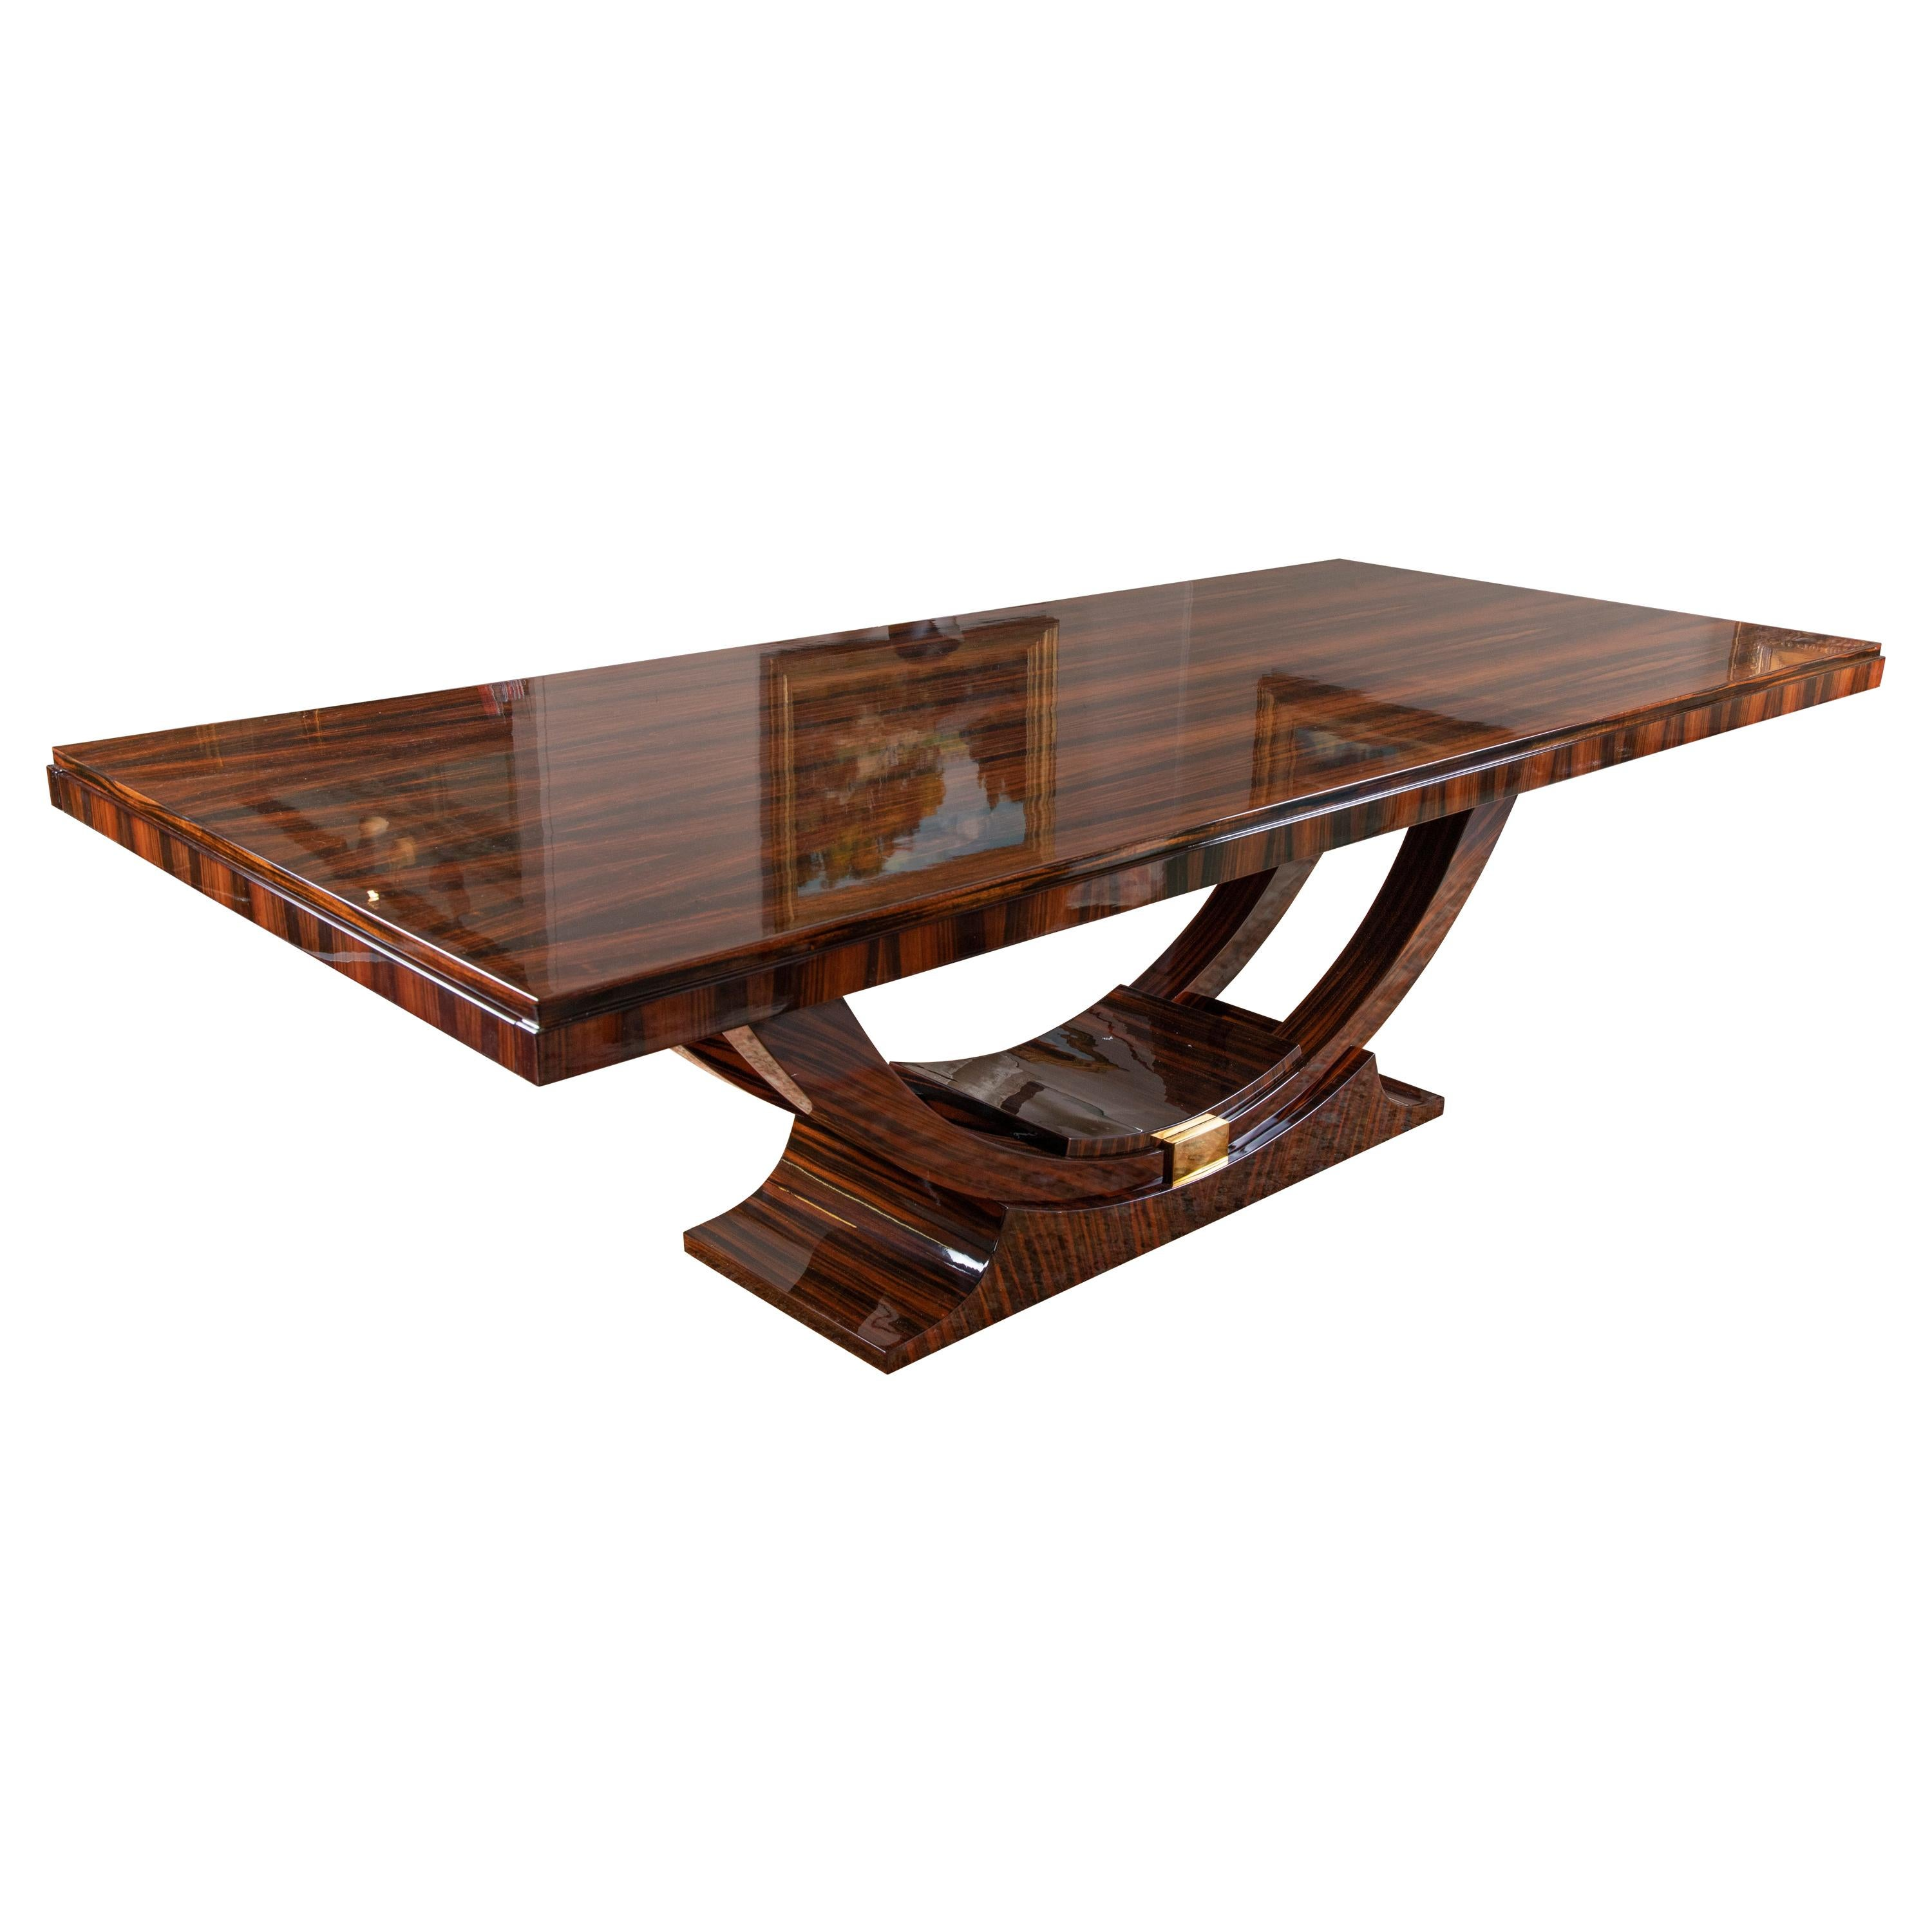 Art Deco French Dinning Table in Macassar Wood